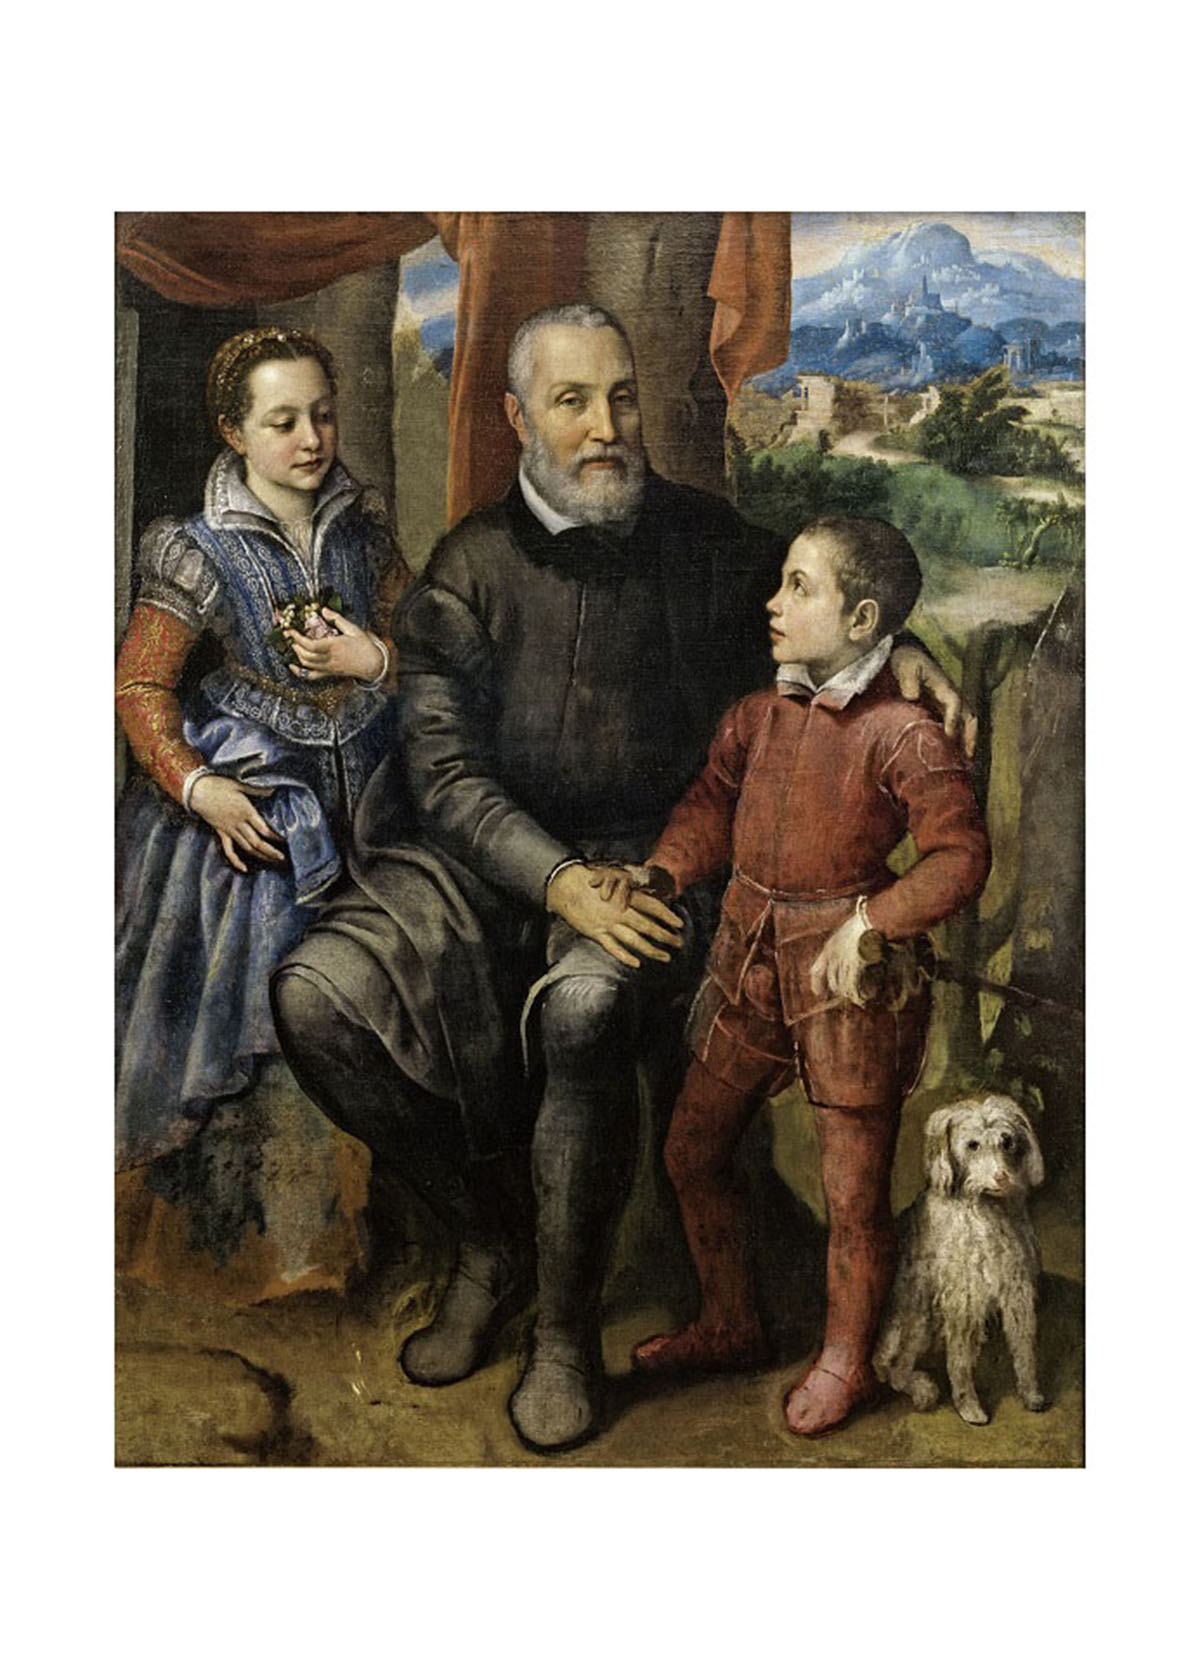 Portrait Group with the Artist's Father Amilcare Anguissola and her siblings Minerva and Astrubale